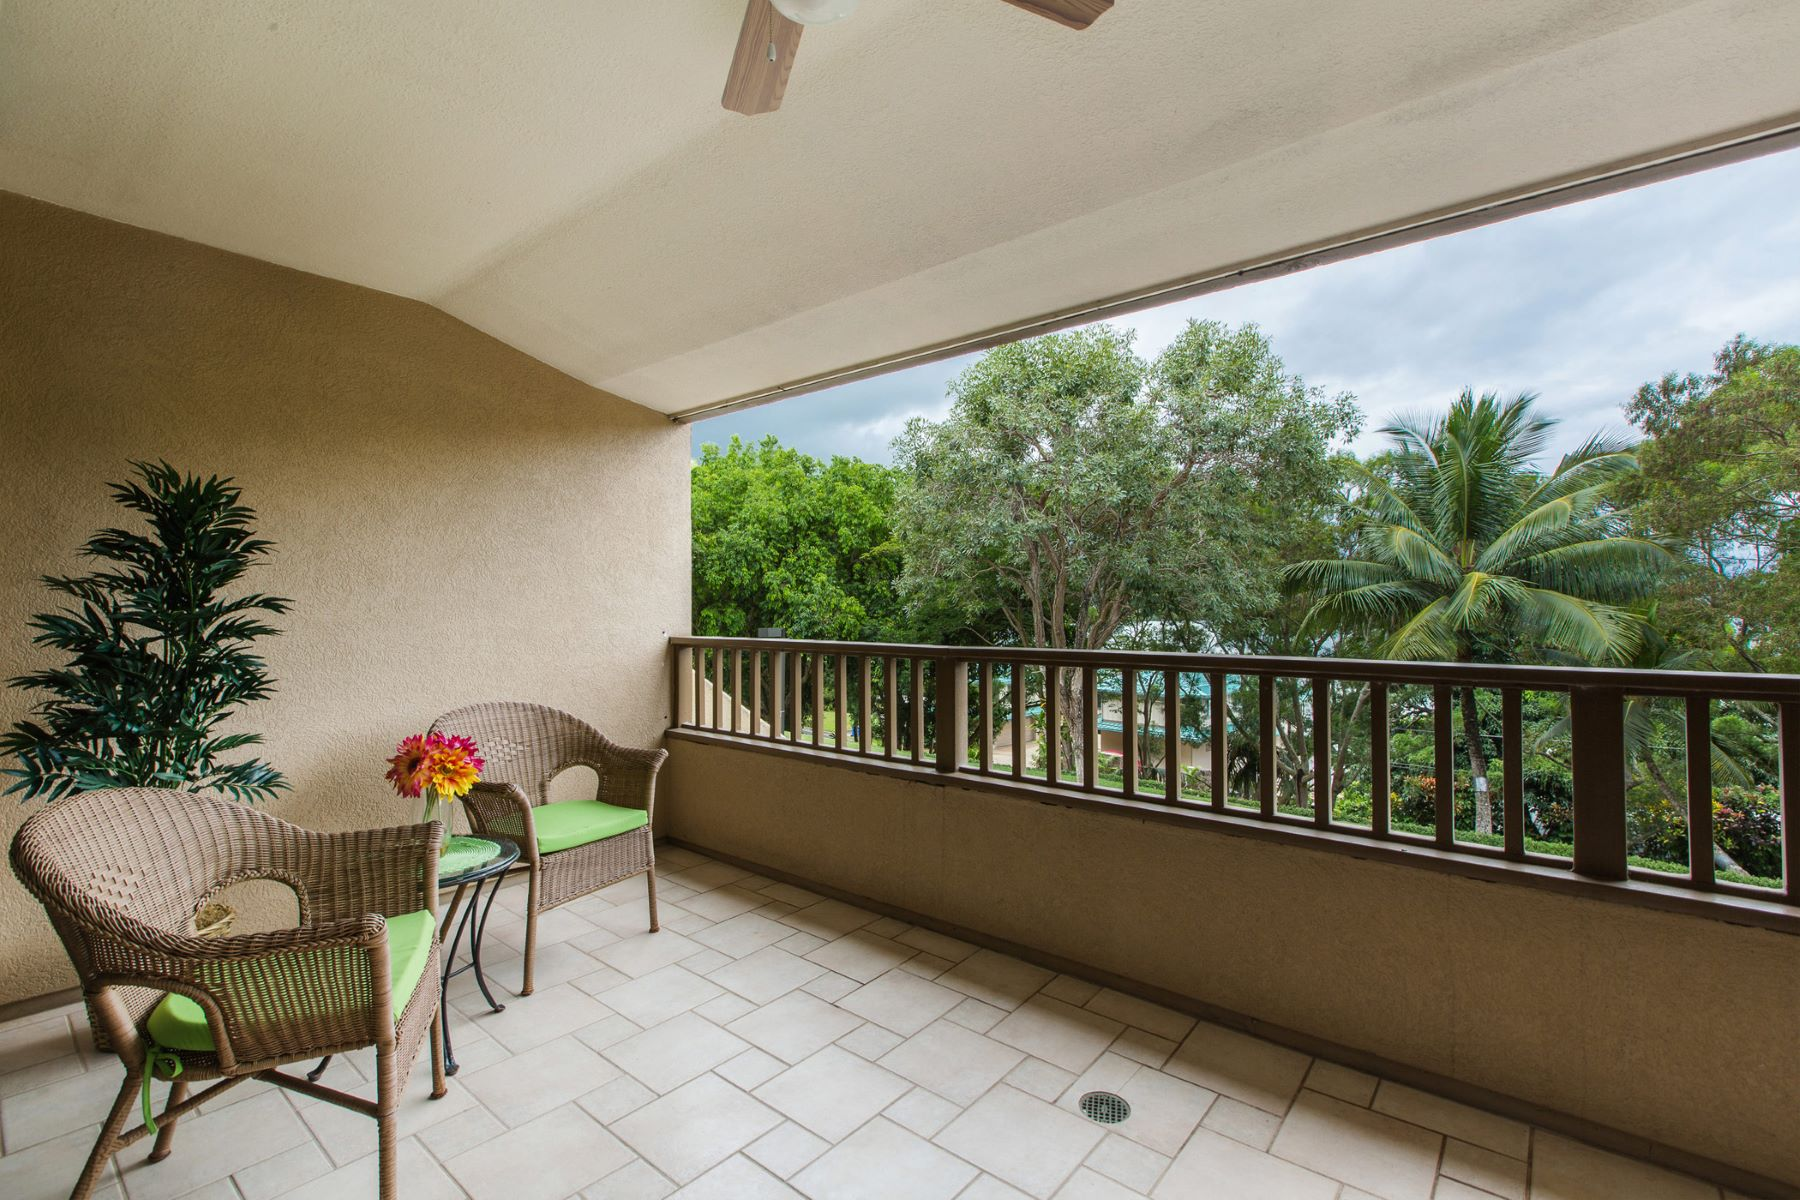 Townhouse for Sale at Lilipuna Living 46-070 Konane Place #3515 Kaneohe, Hawaii 96744 United States